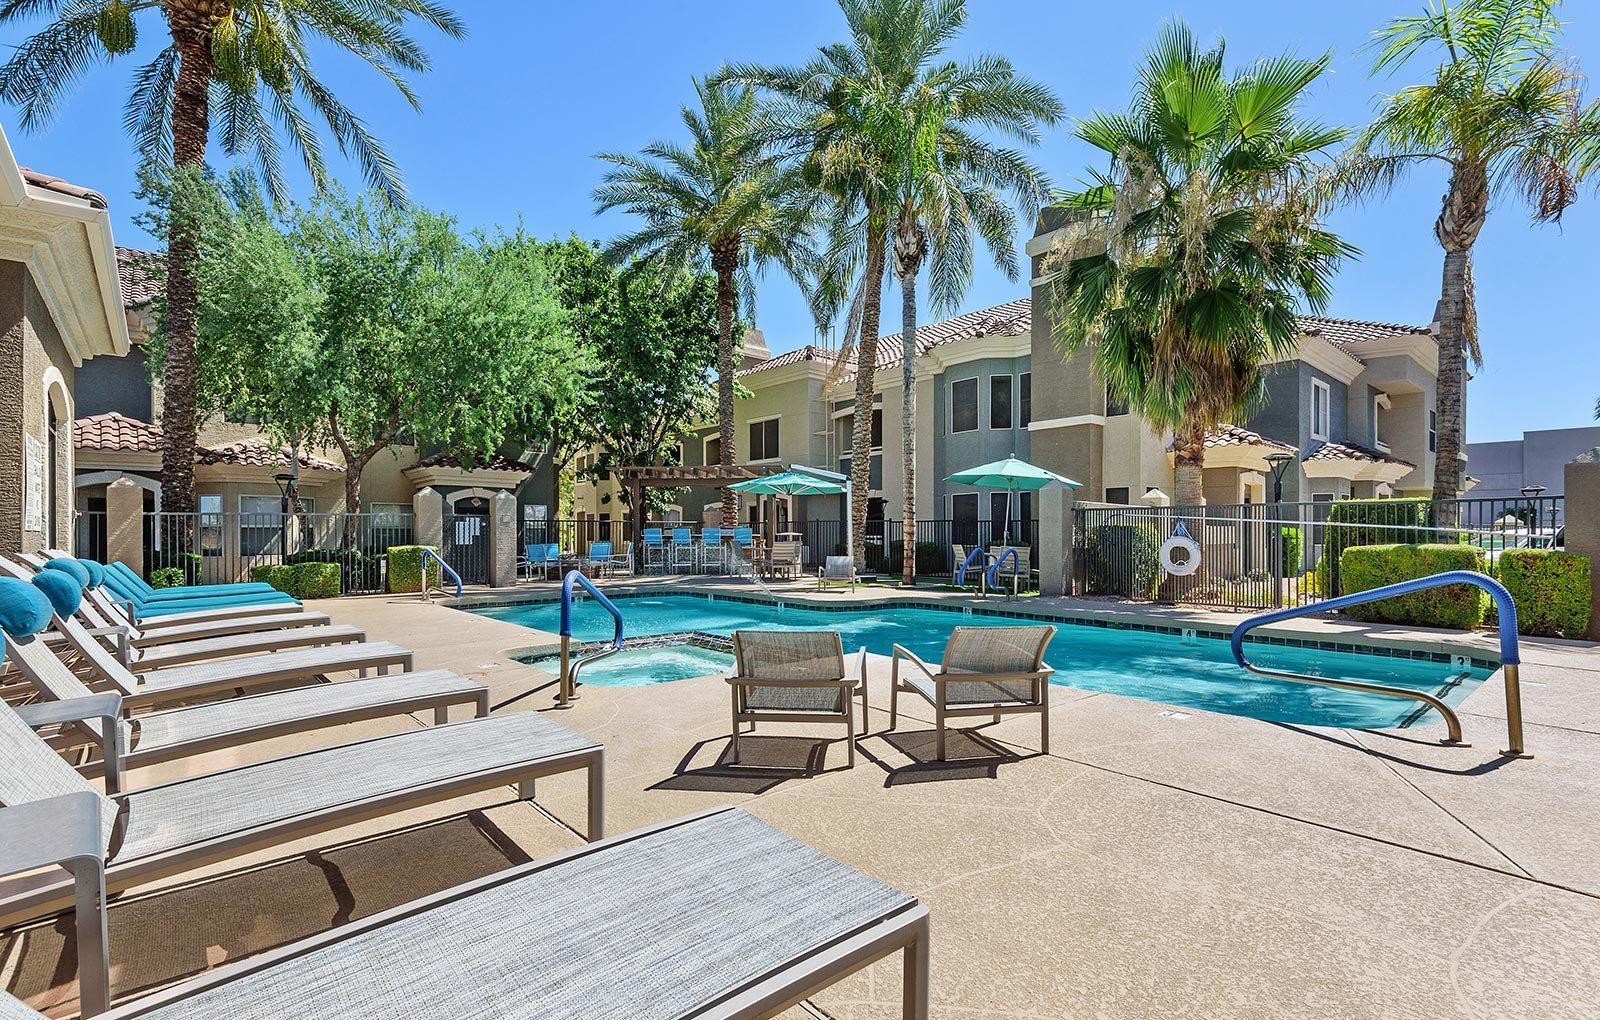 Swimming pool courtyard at Cambria apartments